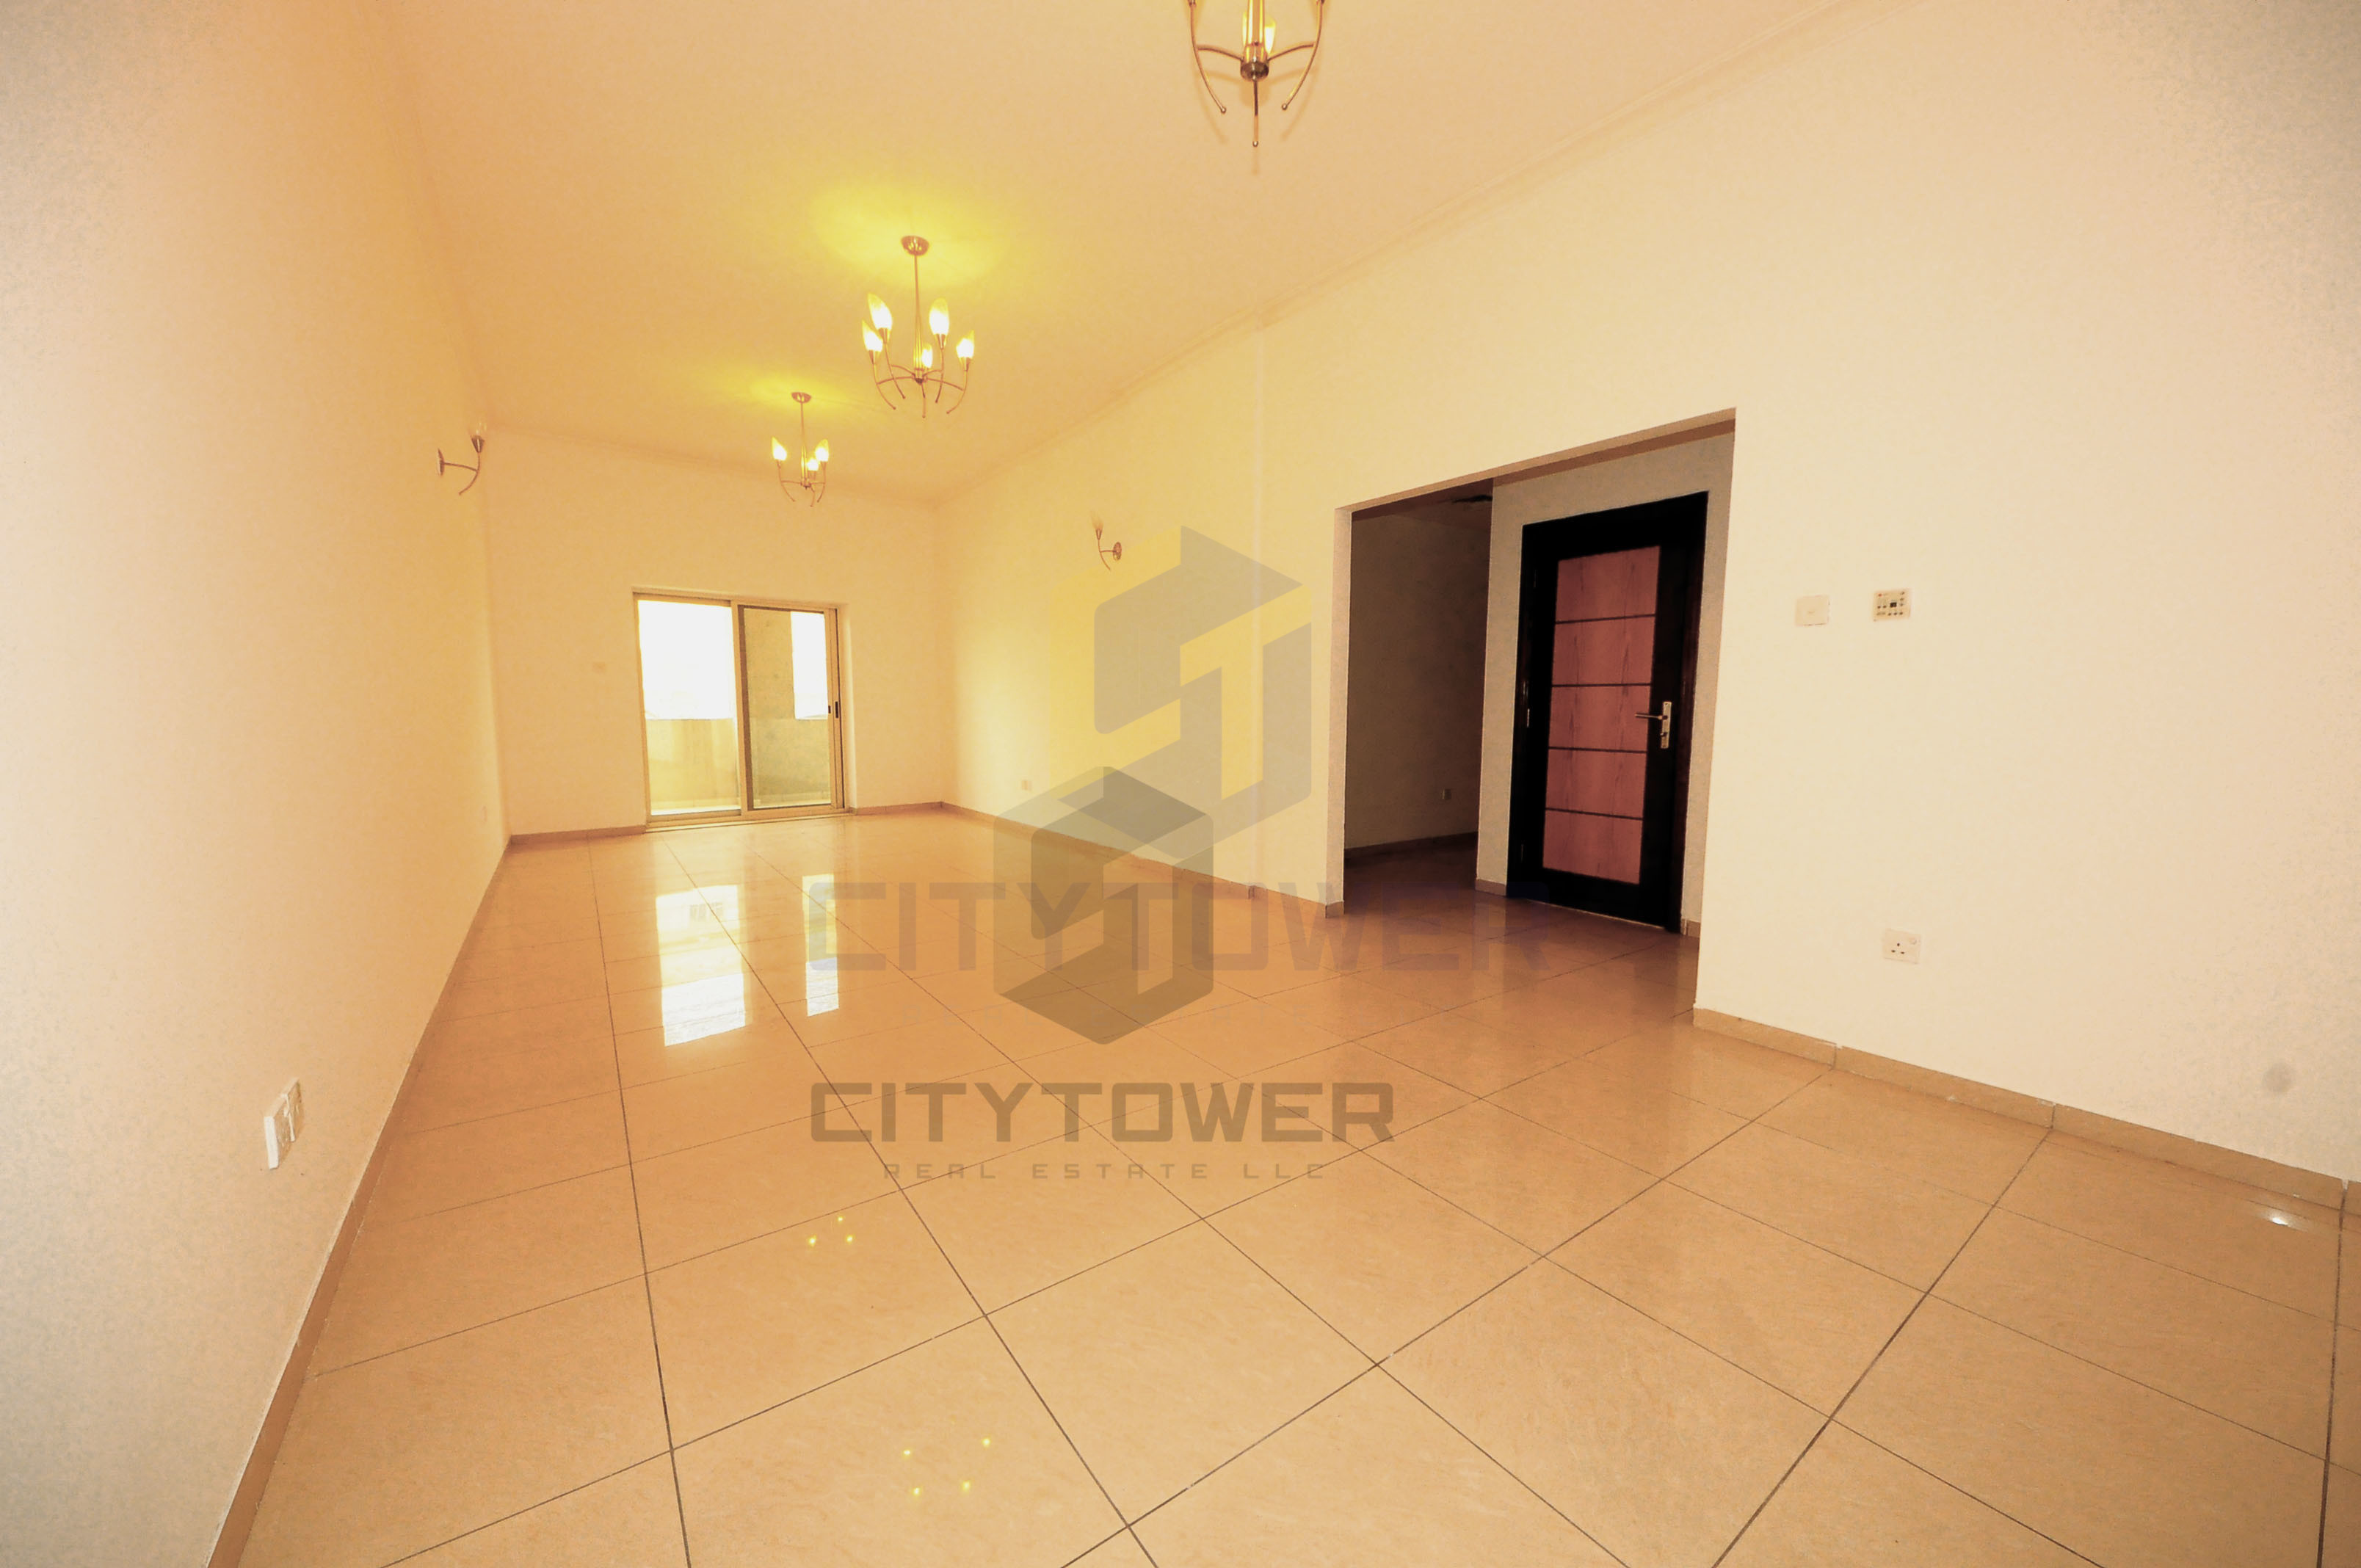 Spacious 2BHK with All Amenities in Satwa